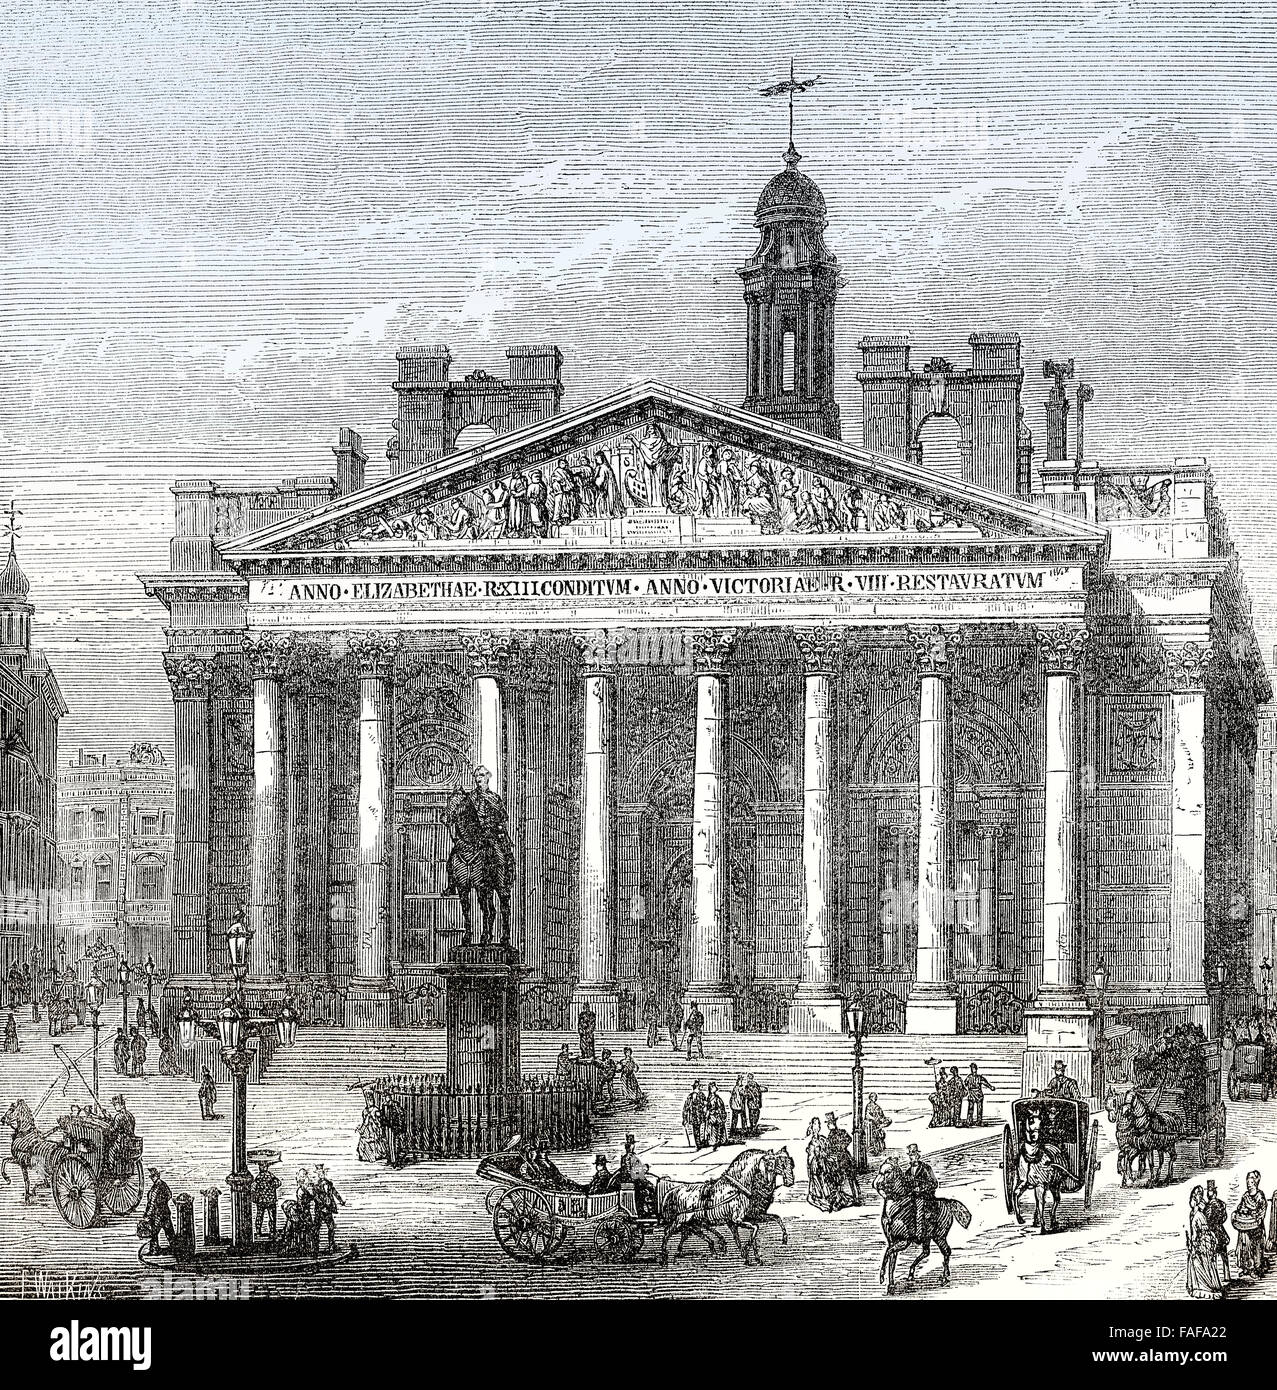 The London Royal Exchange, 19th century - Stock Image